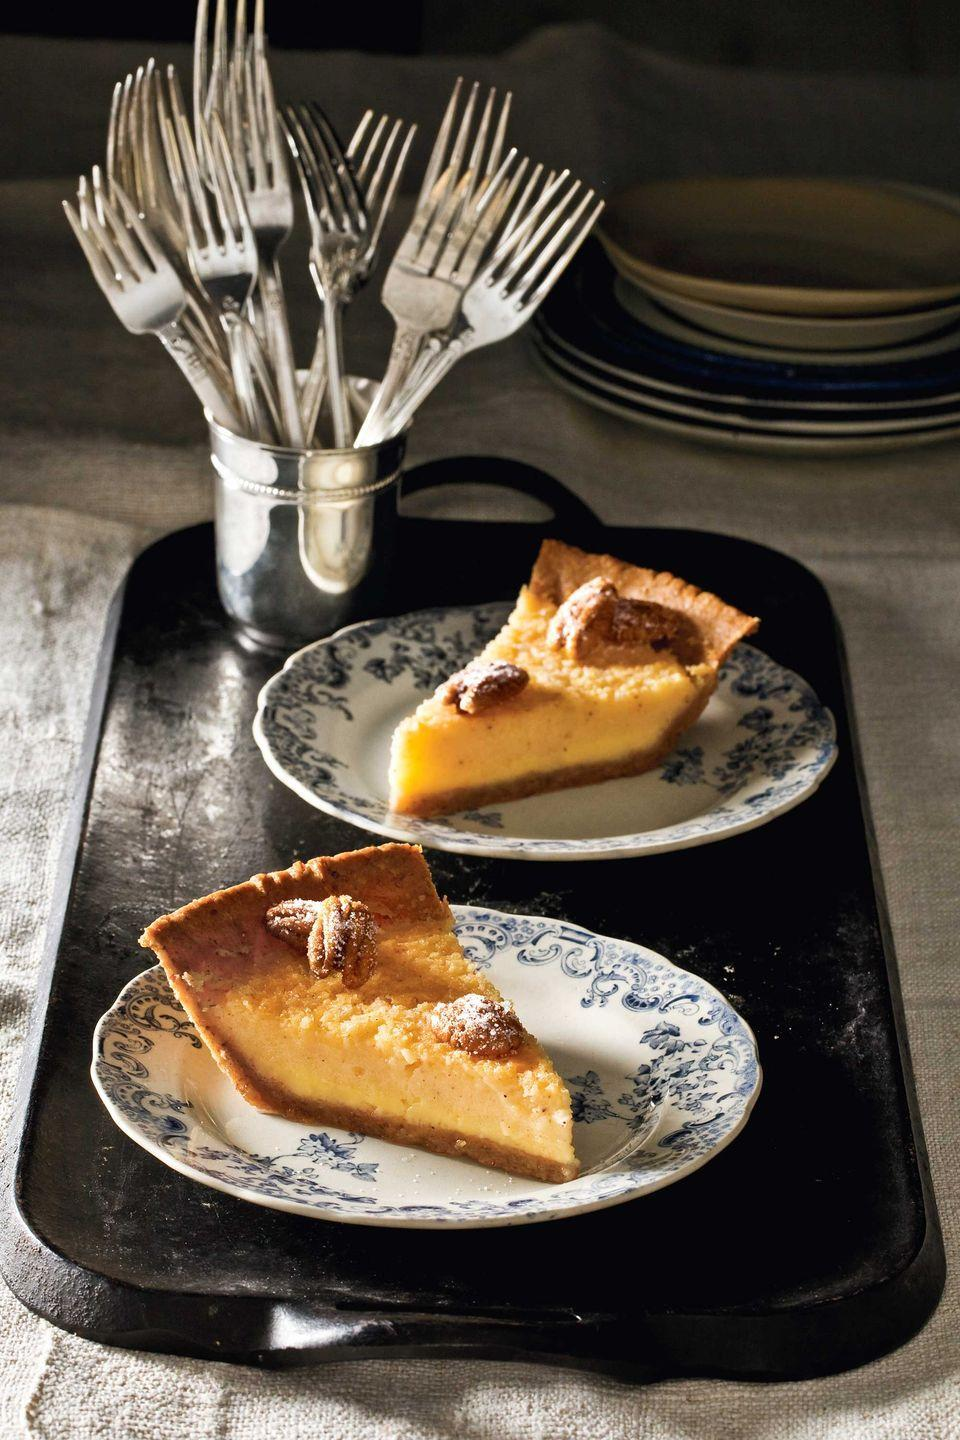 """<p>Plan ahead: This easy dough can be frozen for up to three months.</p><p><strong><a href=""""https://www.countryliving.com/food-drinks/recipes/a4249/buttermilk-pie-pecan-crust-recipe-clx1013/"""" rel=""""nofollow noopener"""" target=""""_blank"""" data-ylk=""""slk:Get the recipe"""" class=""""link rapid-noclick-resp"""">Get the recipe</a>.</strong></p>"""